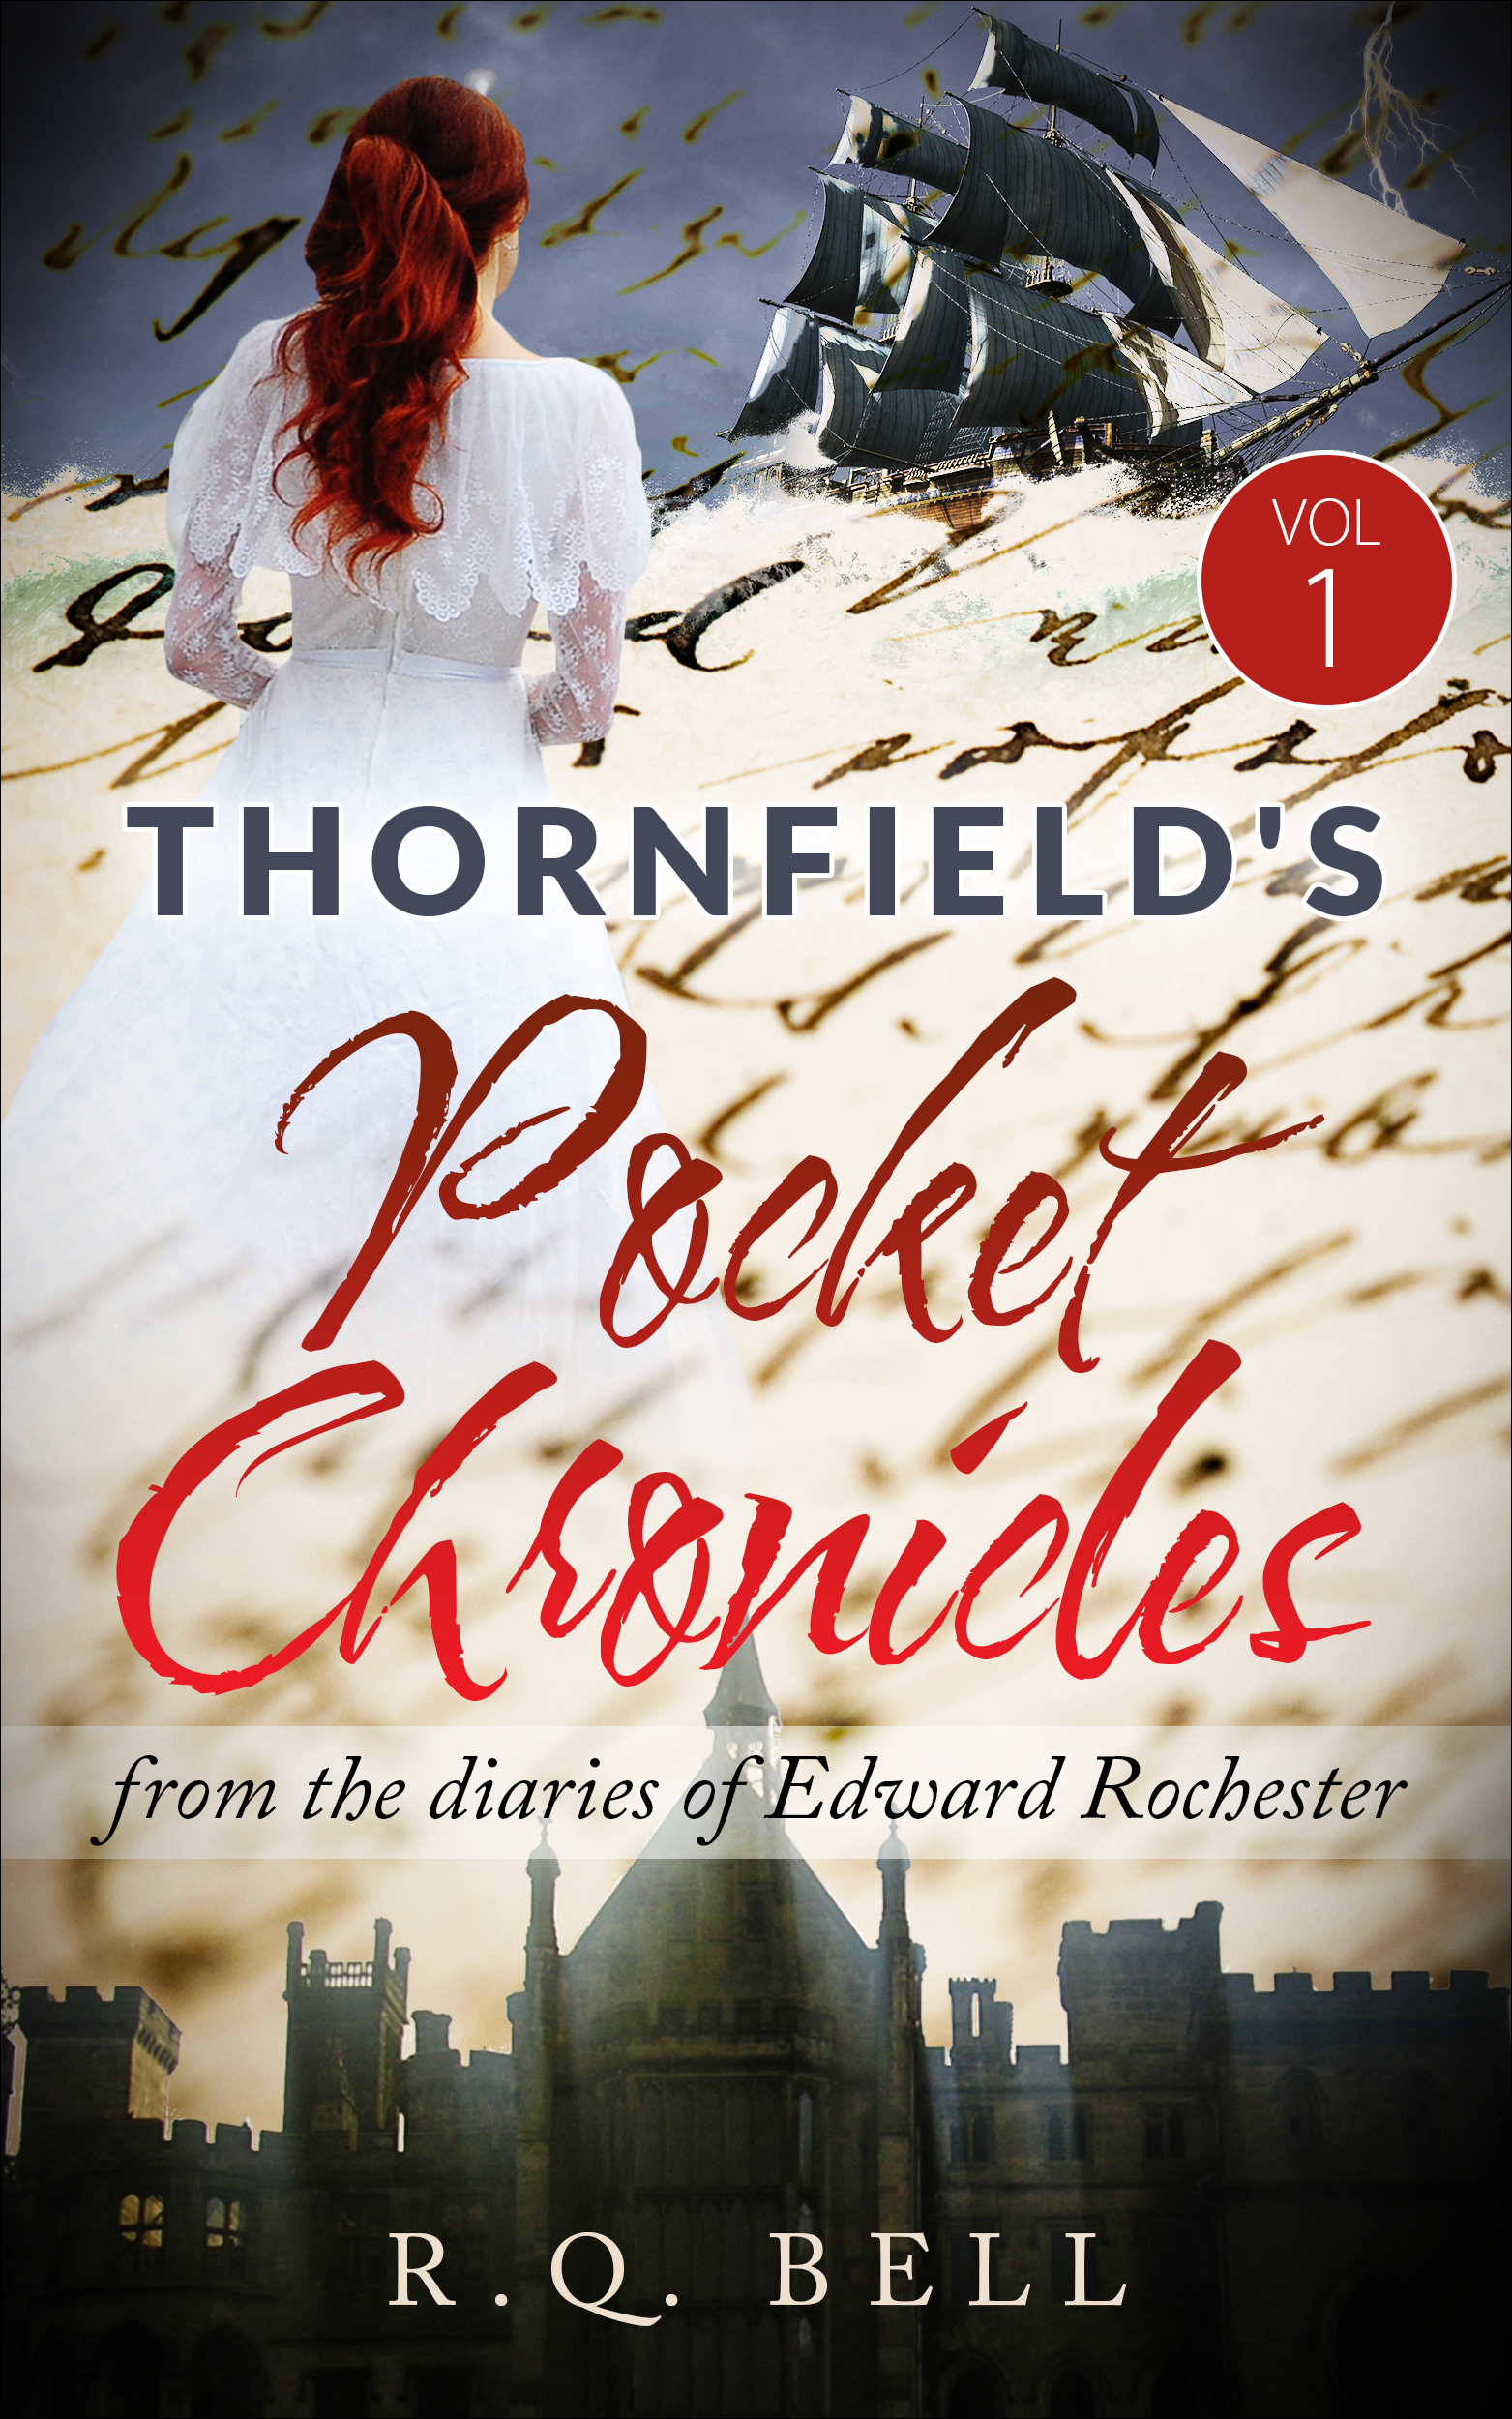 Thornfield's Pocket Chronicles